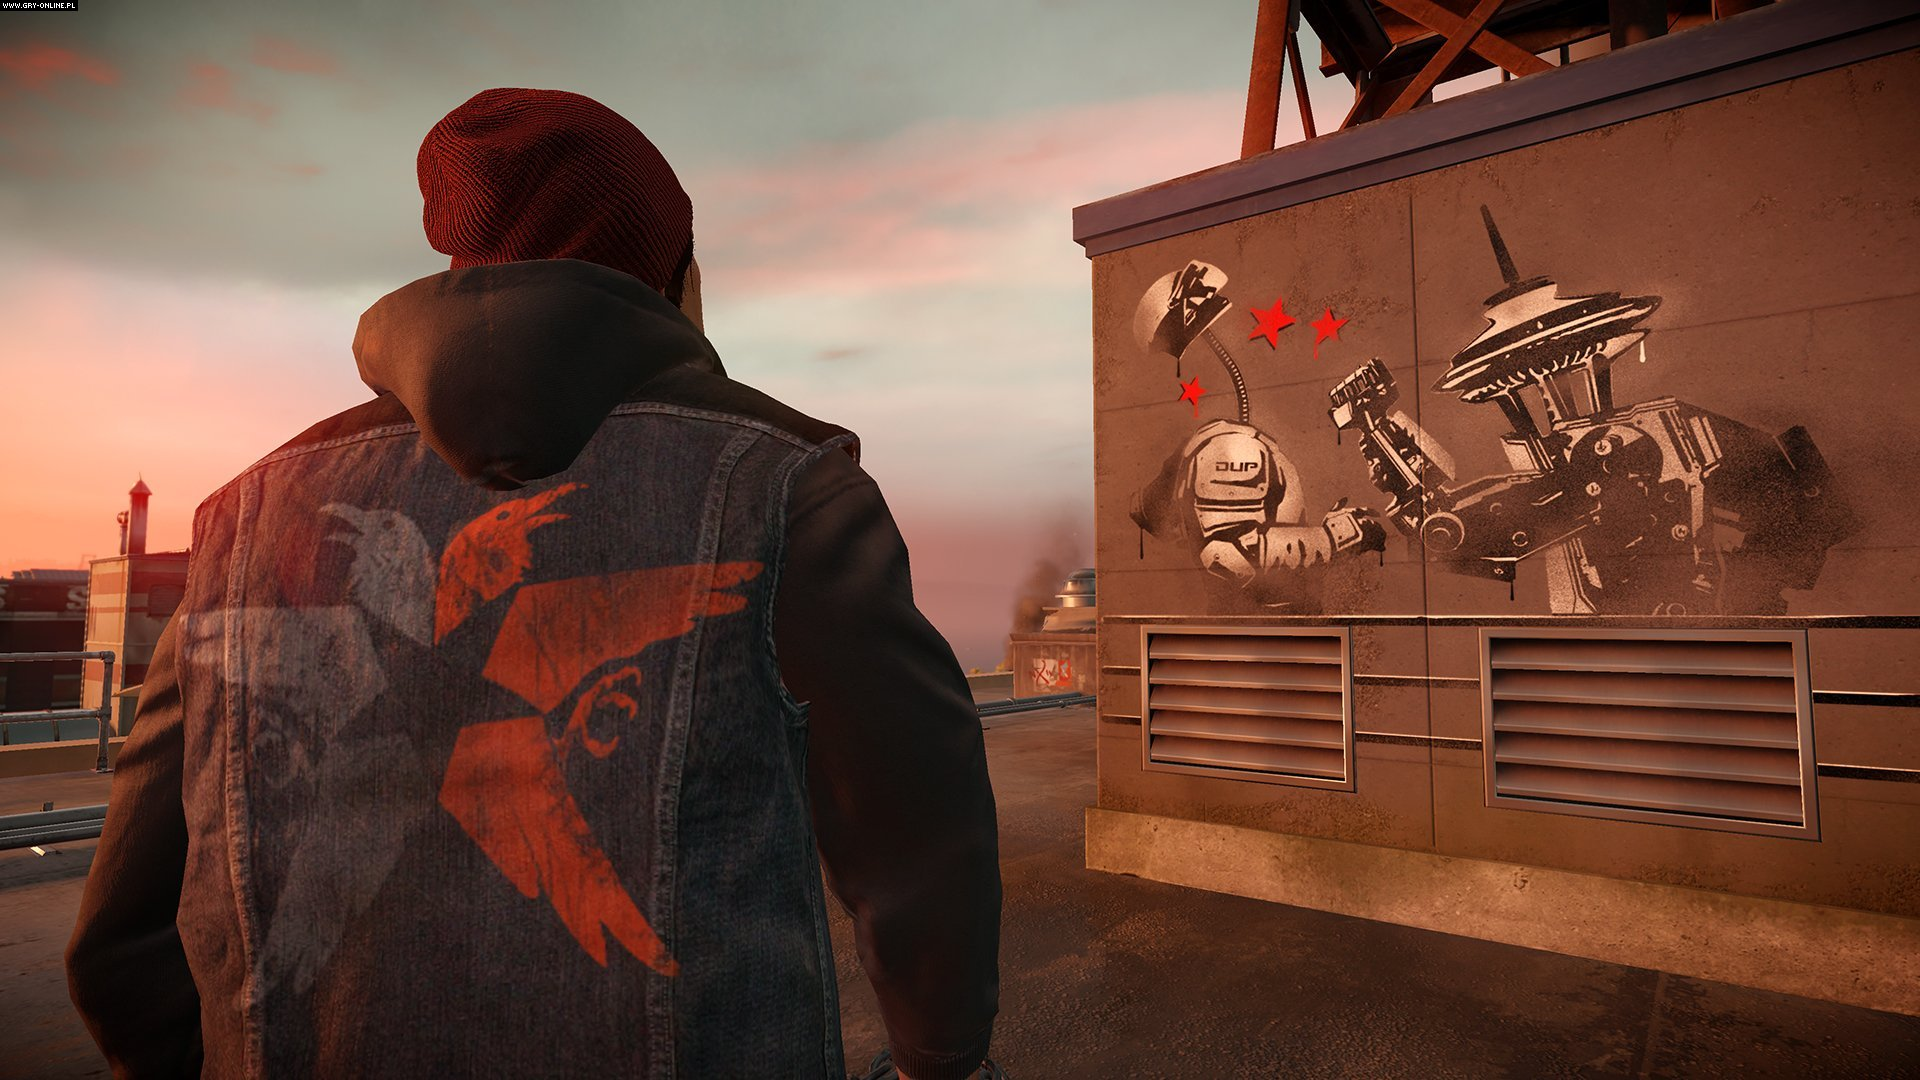 inFamous: Second Son PS4 Games Image 9/138, Sucker Punch, Sony Interactive Entertainment